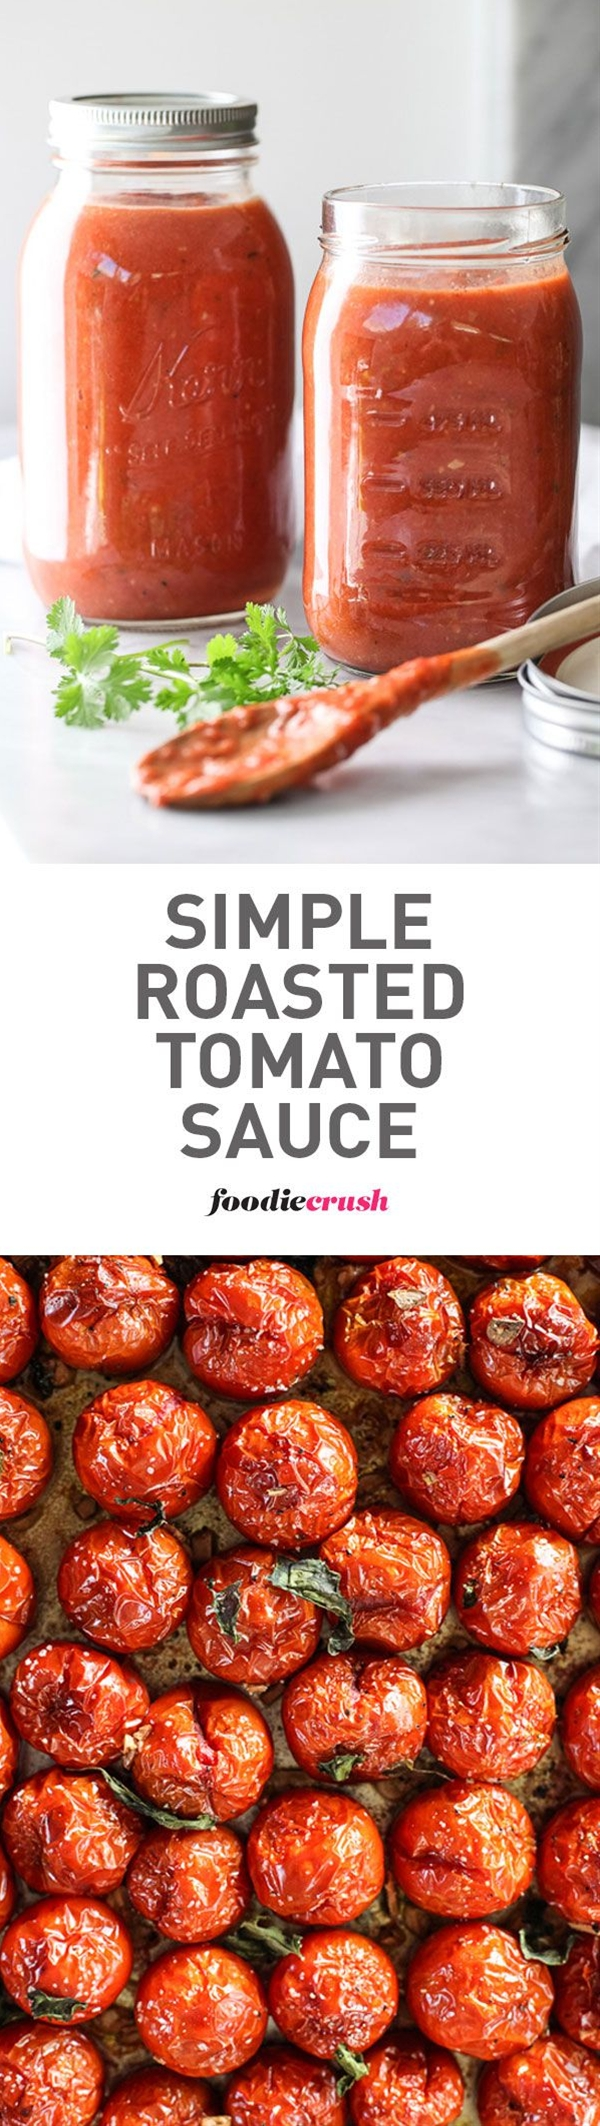 The secret to this favorite sauce #recipe starts with fresh tomatoes that are roasted in the oven to make them extra sweet all year round | foodiecrush.com